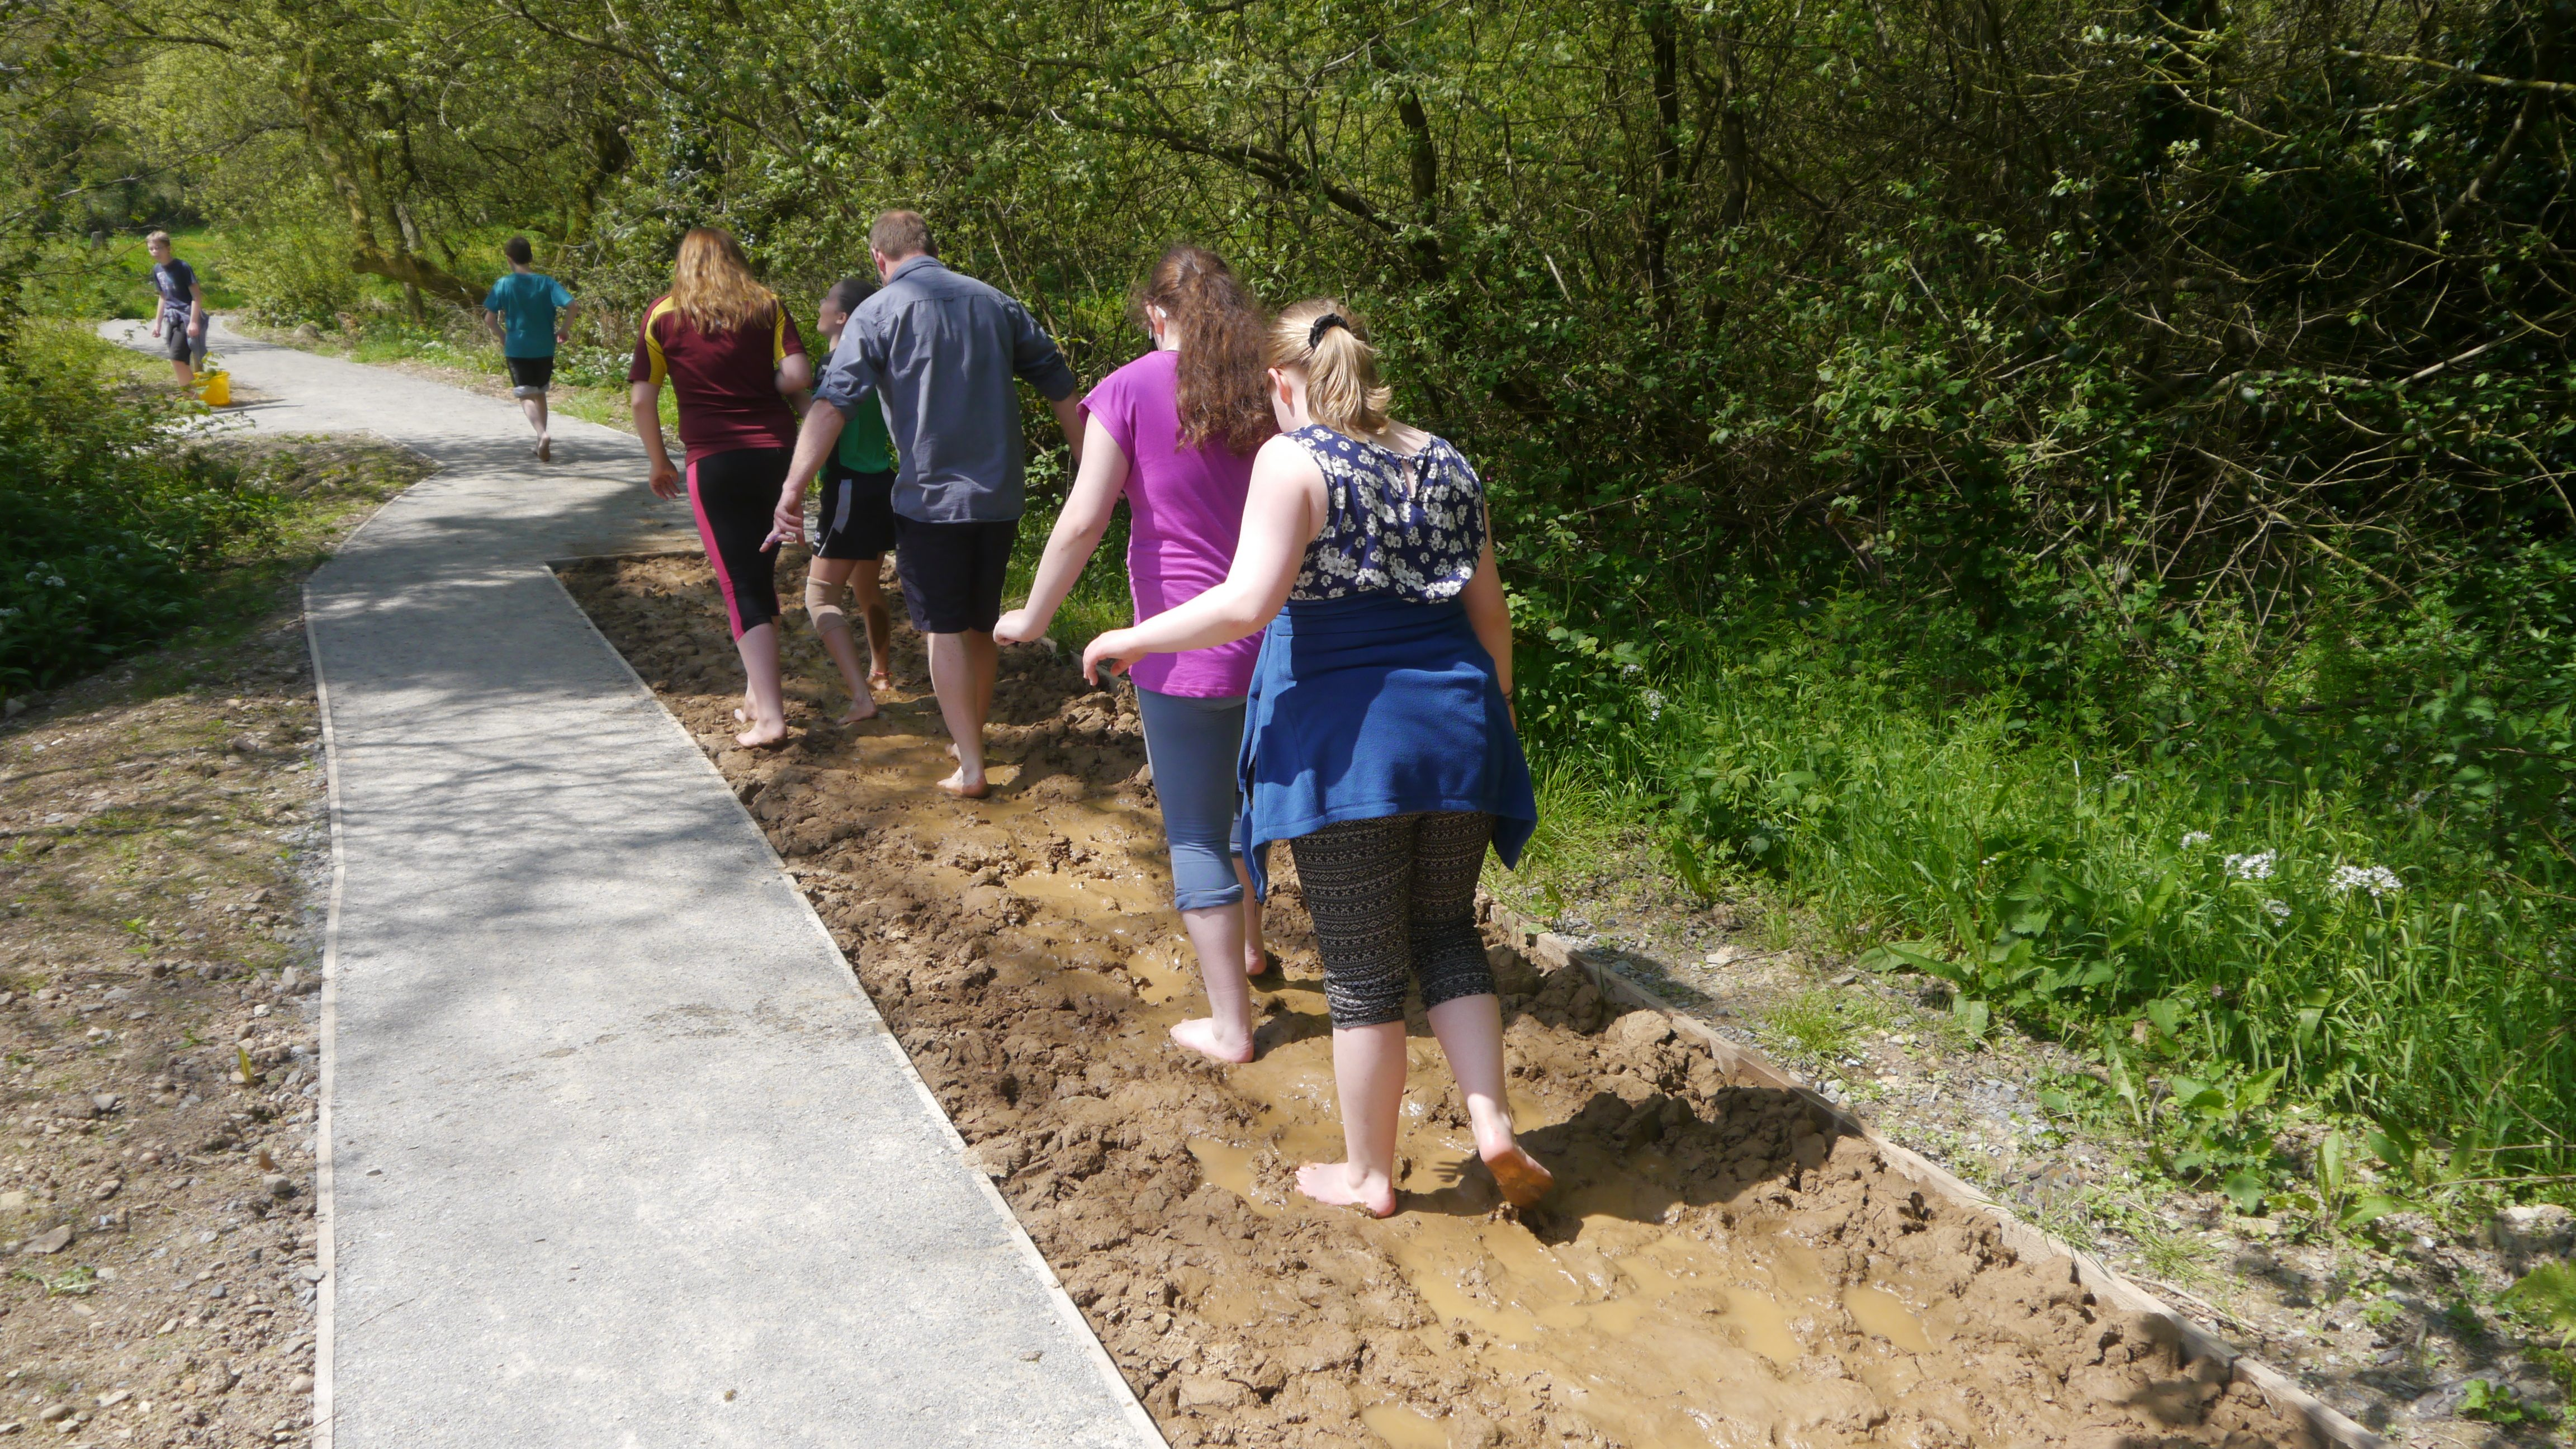 A group walking the barefoot on sand on Barefoot Trail at Castell Henllys